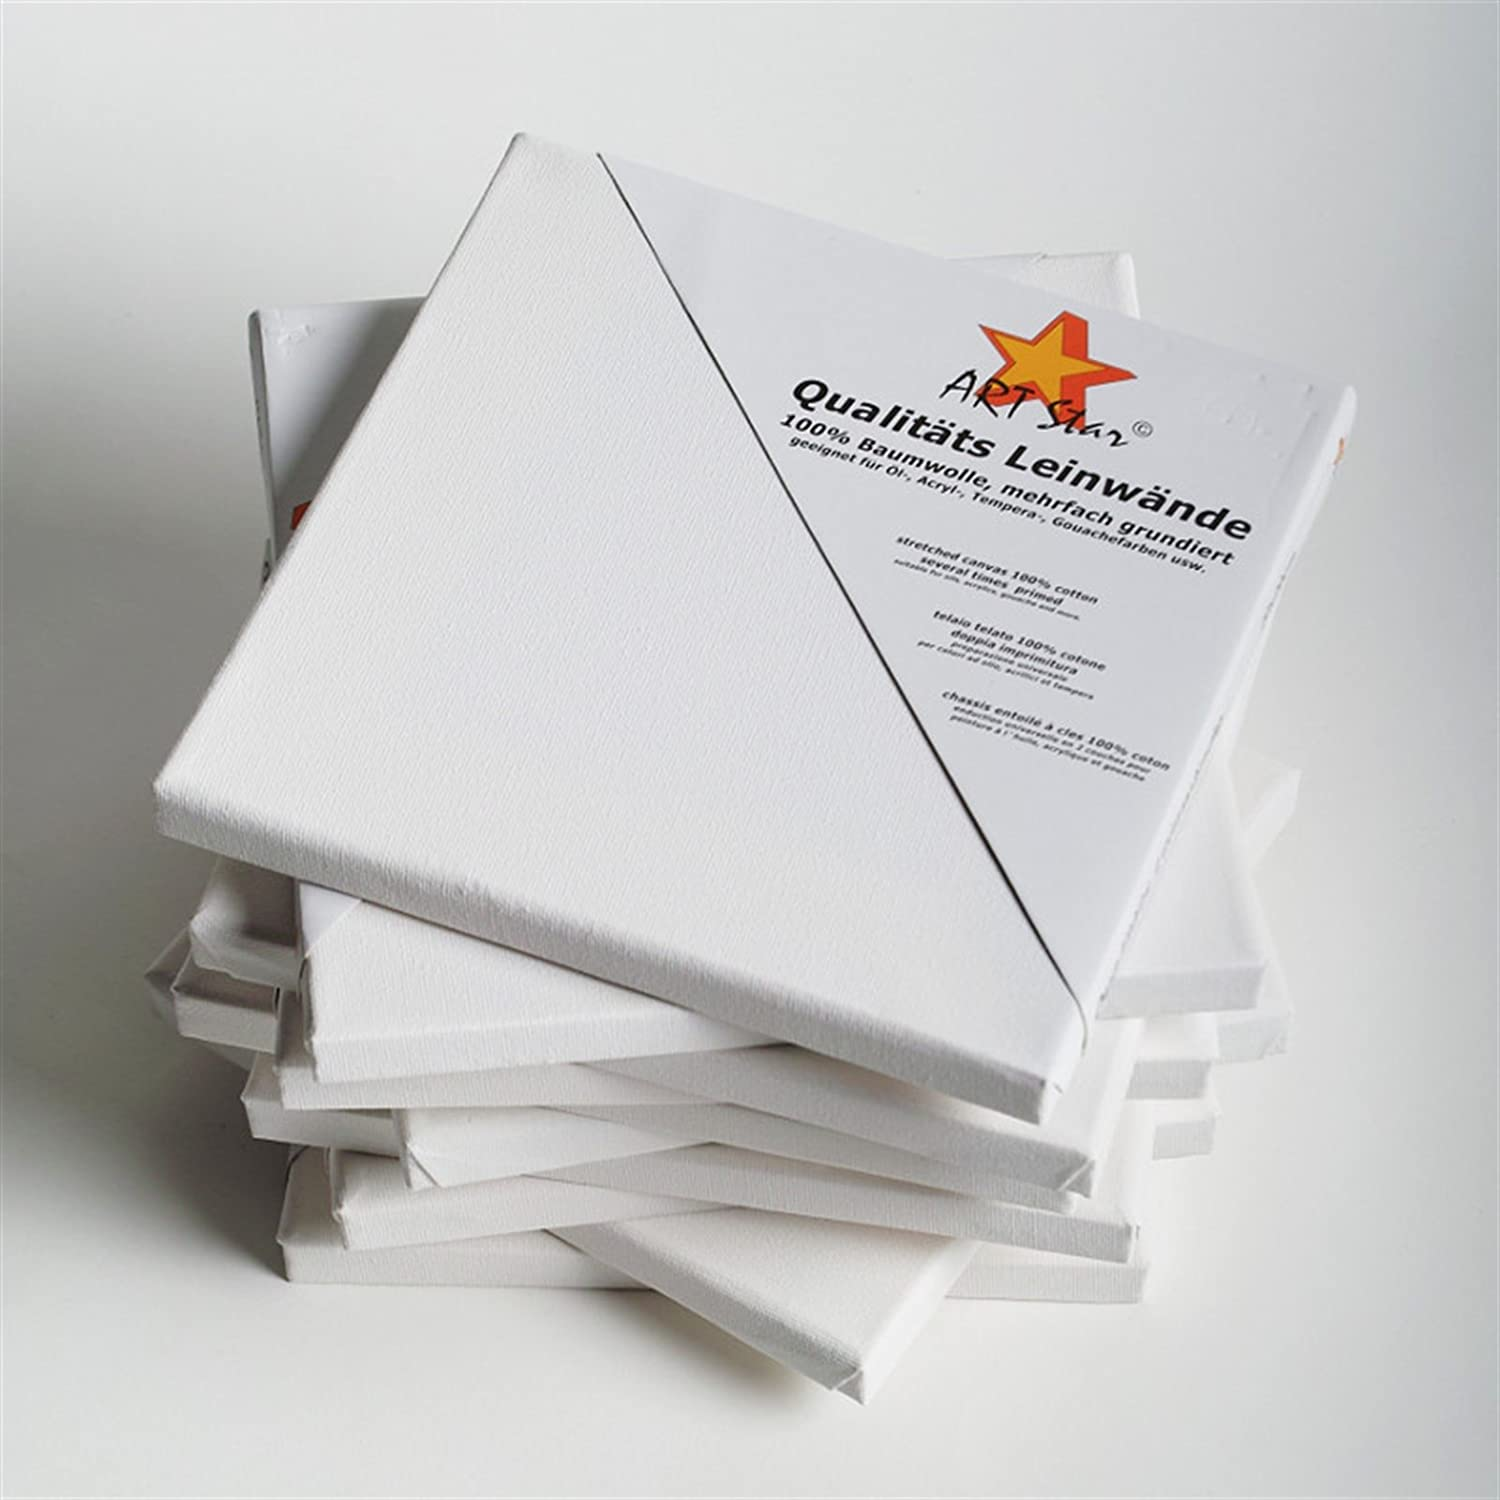 ready-to-paint 100/% cotton 30x30 cm for beginners BK BILDERRAHMEN KOLMER 10 ART-STAR STRETCHED CANVASES ~12x12